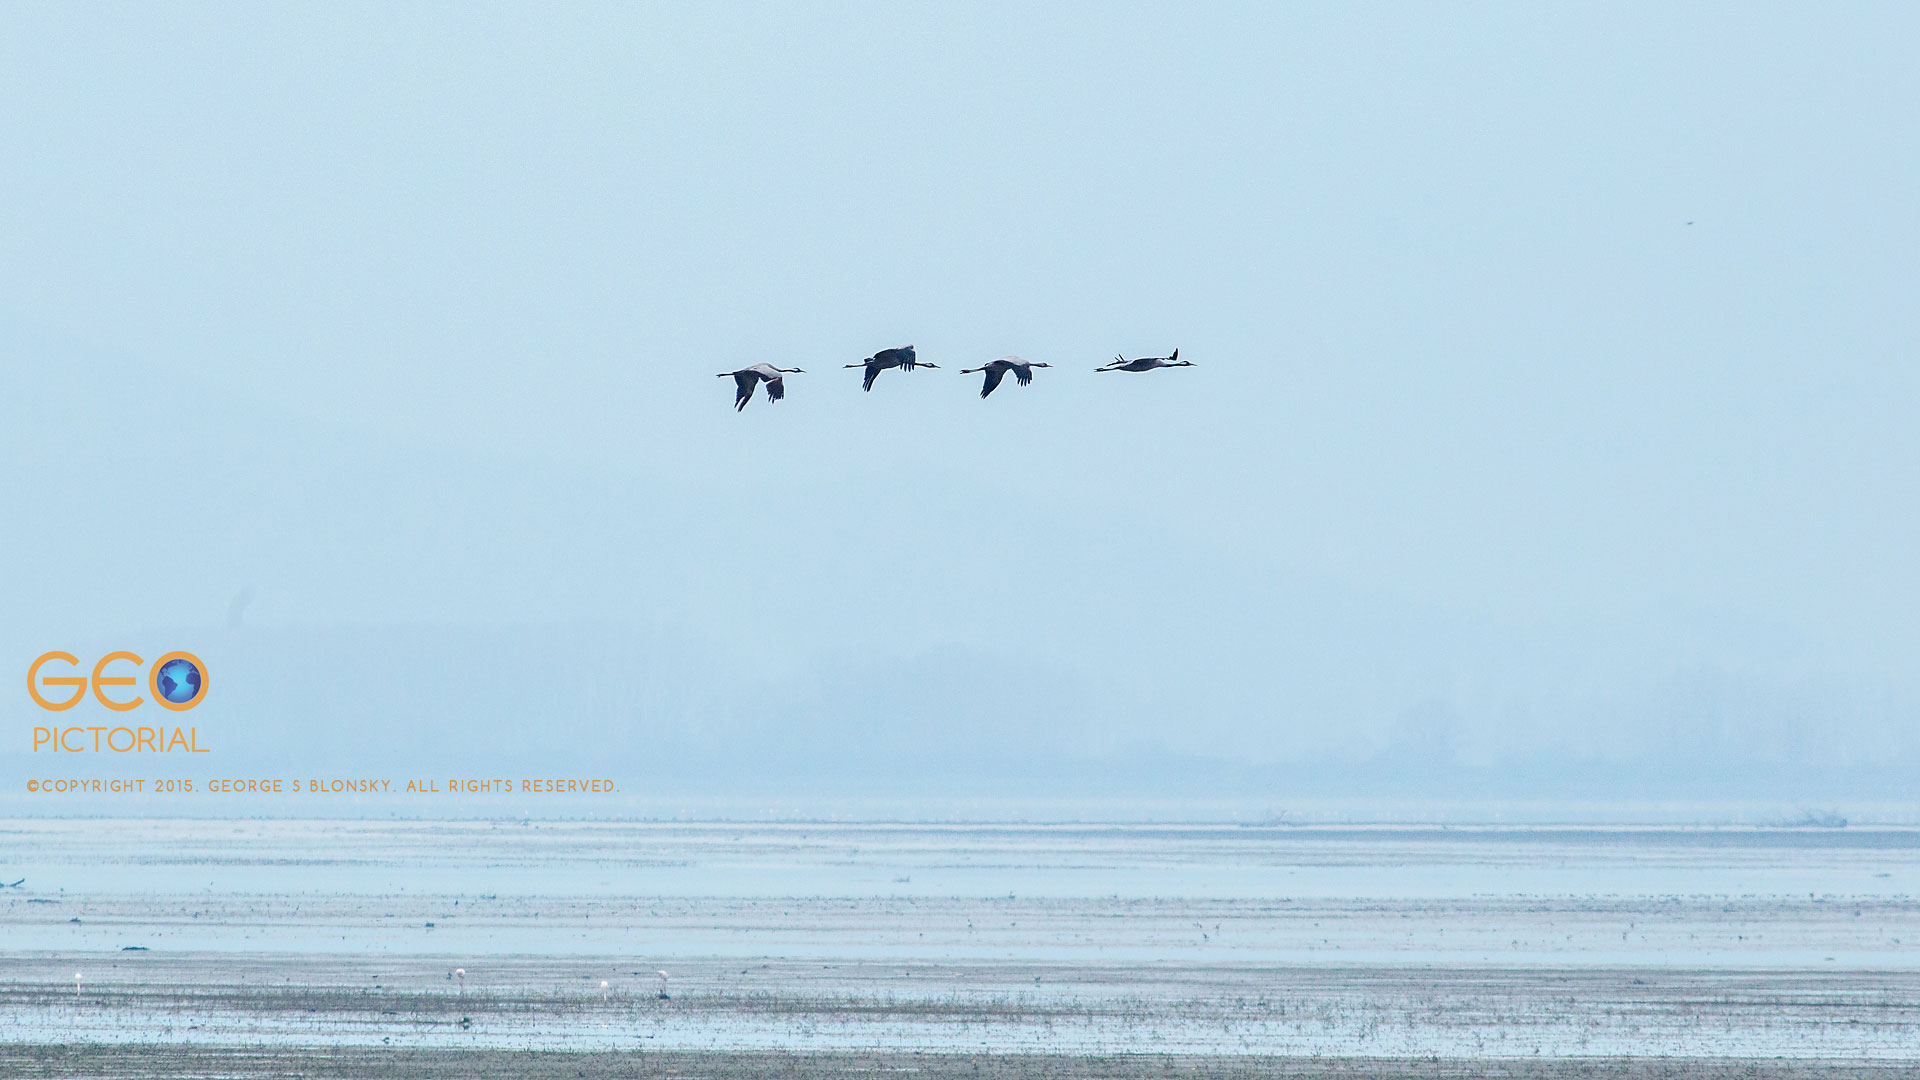 Common Cranes (Grus grus) in flight